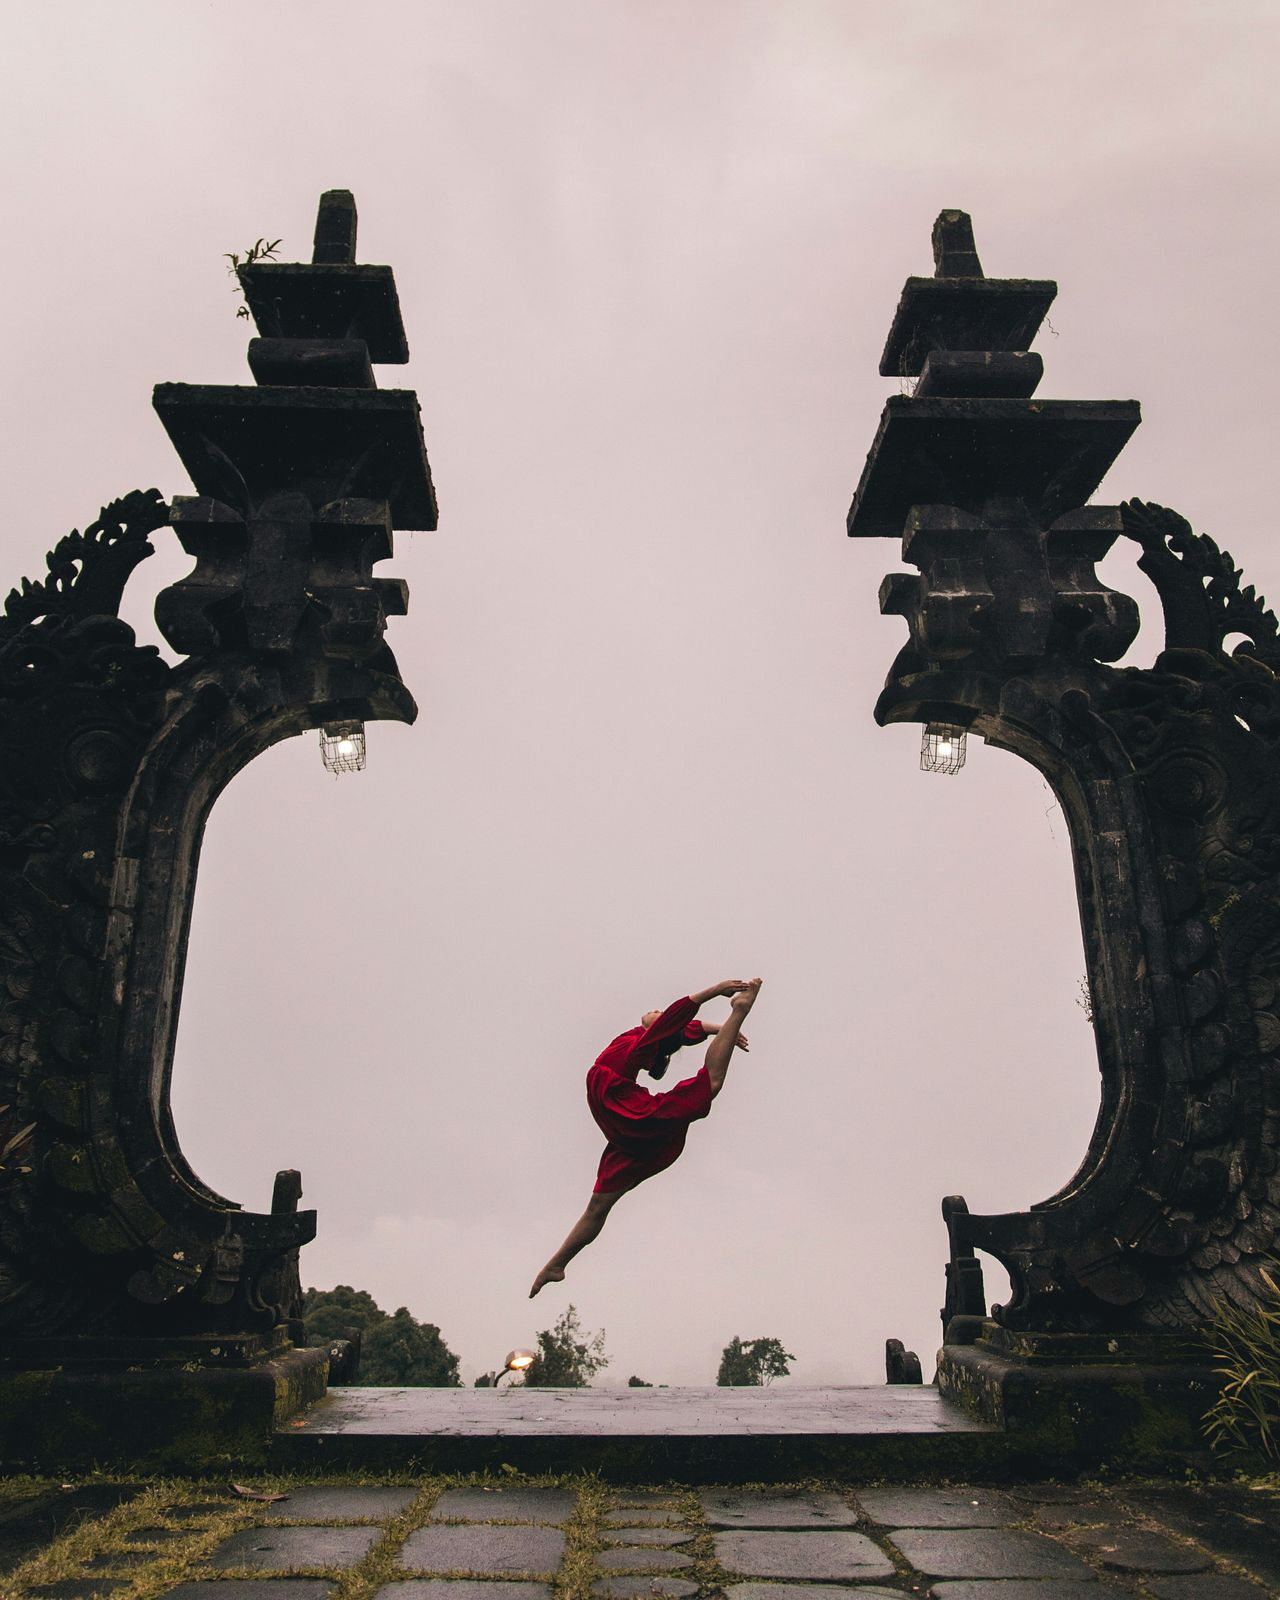 Why I travel Dancer Dance Dance Photography Bali, Indonesia Bali Nature_collection Framed Framing Composition Jump Women Of EyeEm Travel Travel Destinations Travel Photography Wanderlust Nature Red Dress